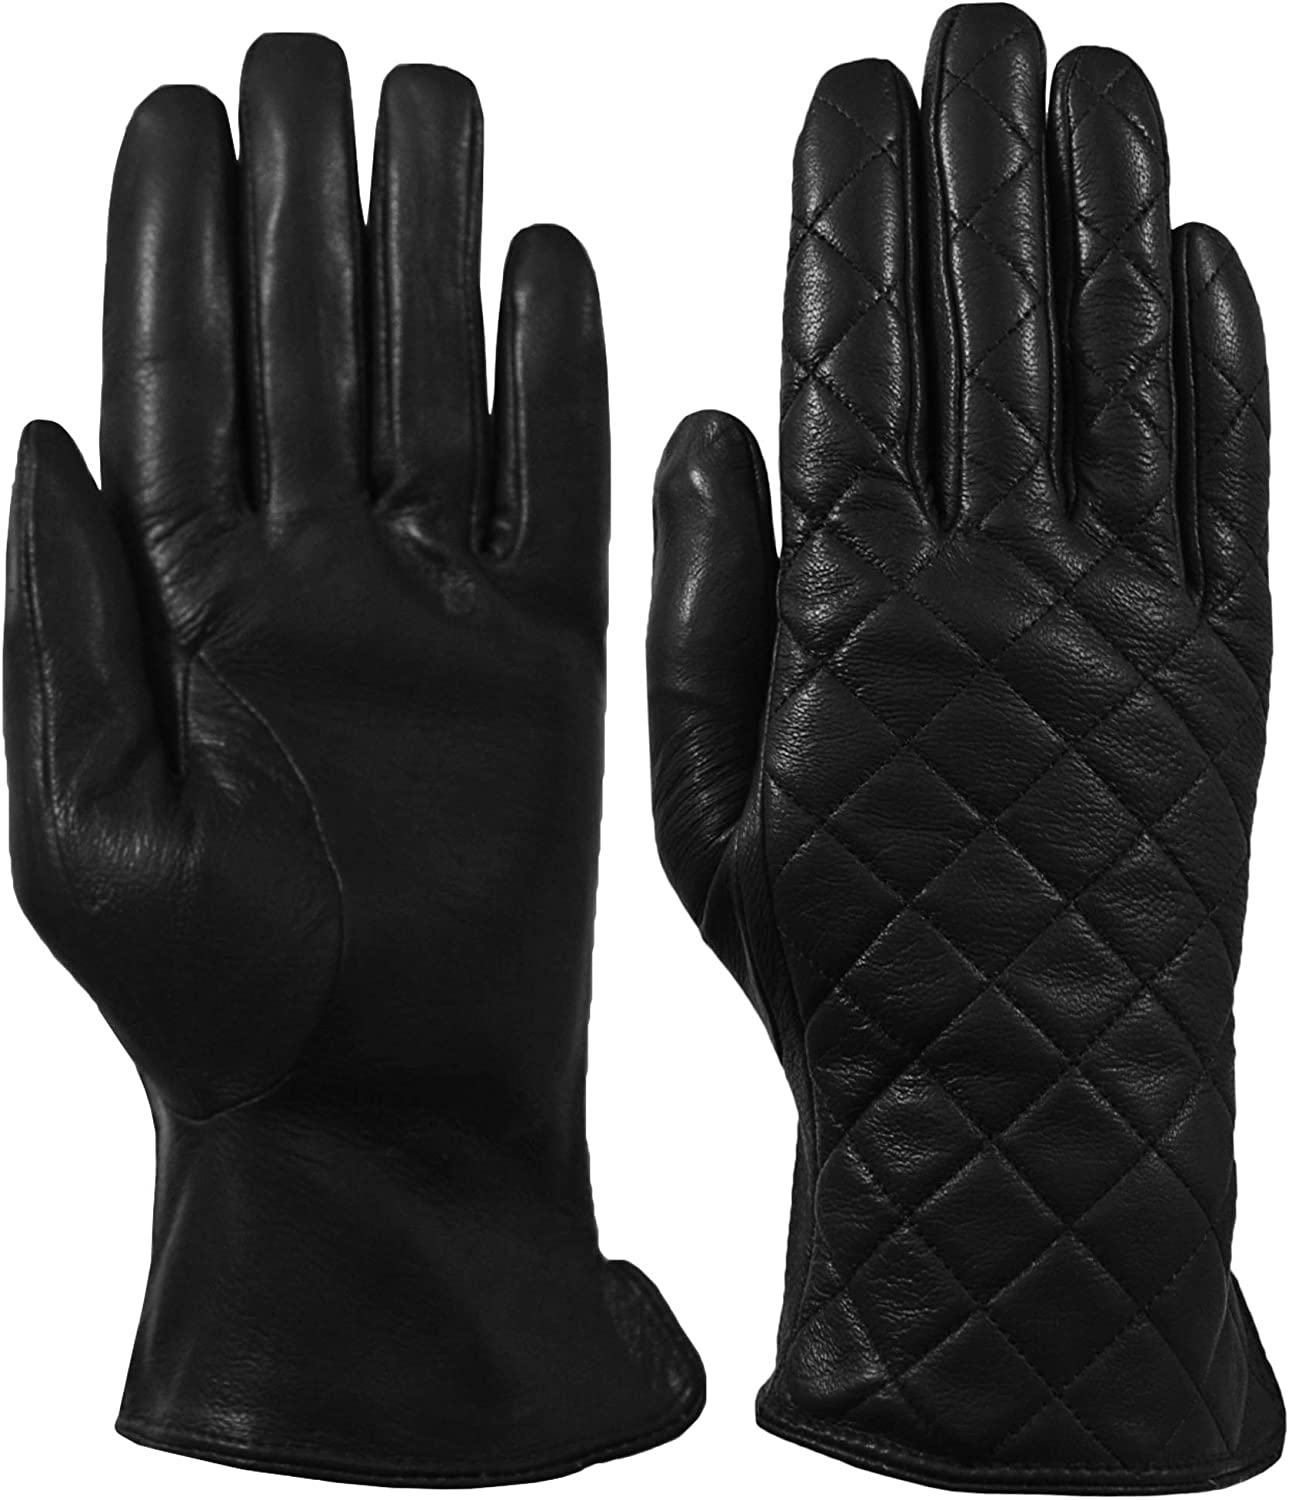 Giromy Samoni Womens Warm Winter Plush Faux Fur Lined Genuine Leather Quilted Dress Driving Gloves - Black